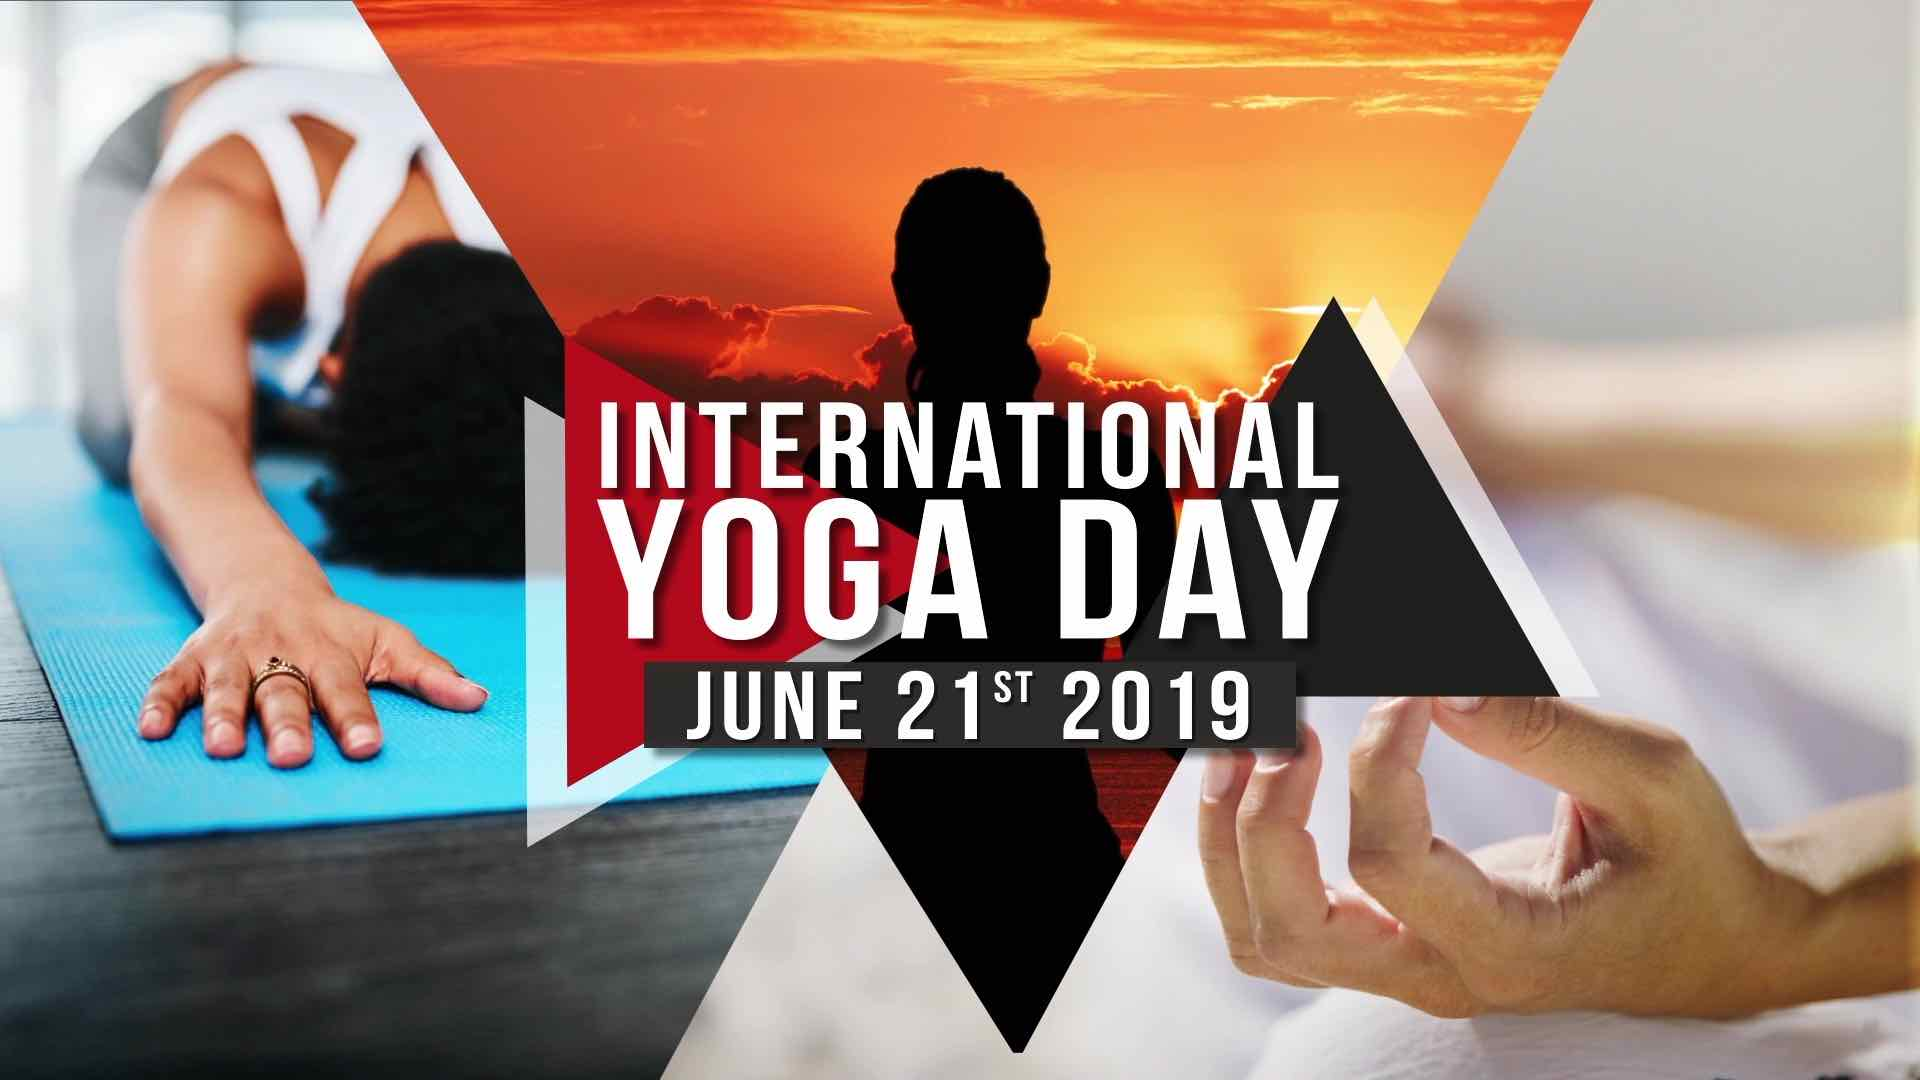 International Yoga Day 2019 Promo Video